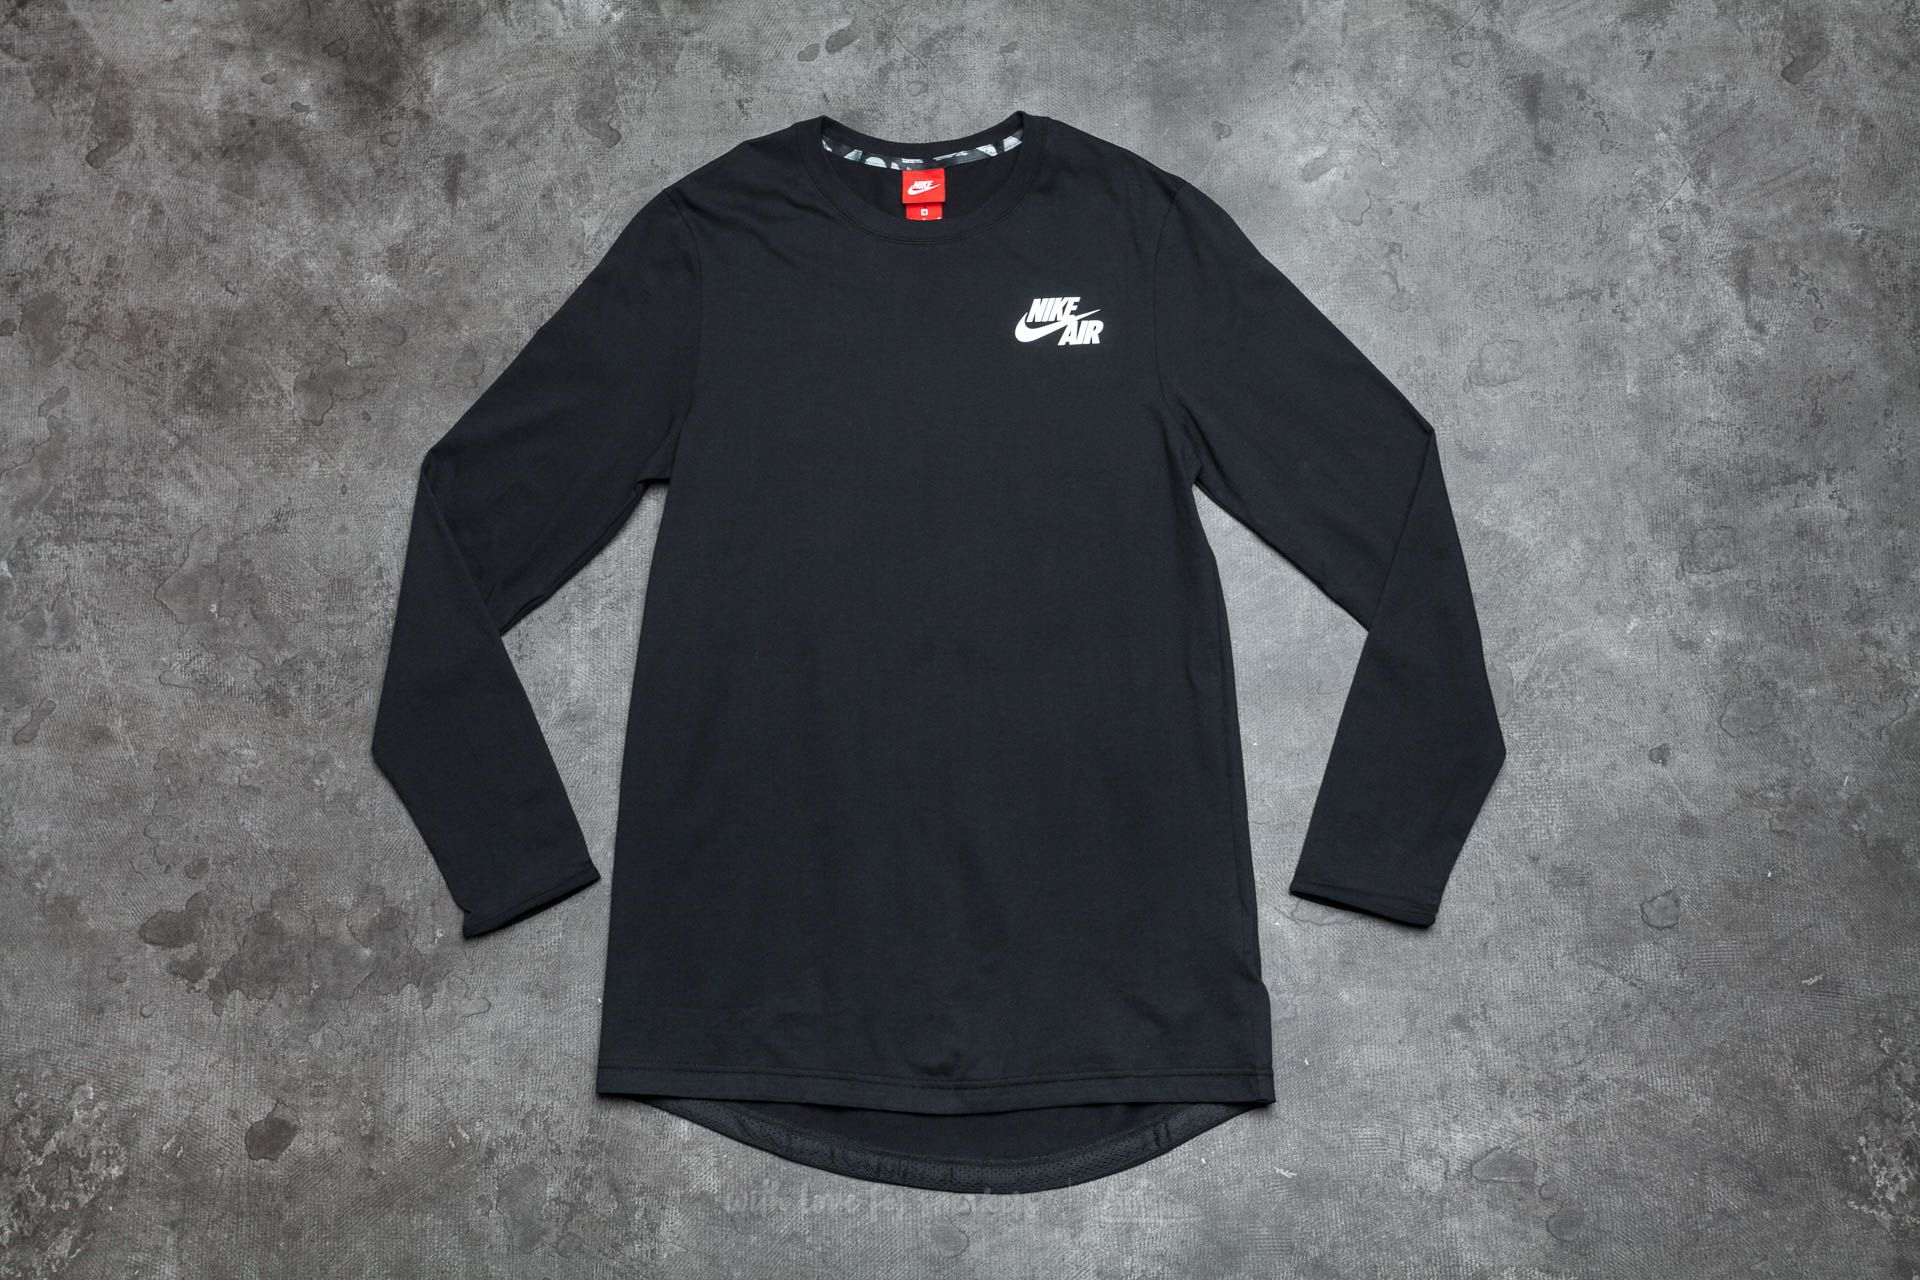 751f0eef4451 Nike Air Long Sleeve Top Black  White